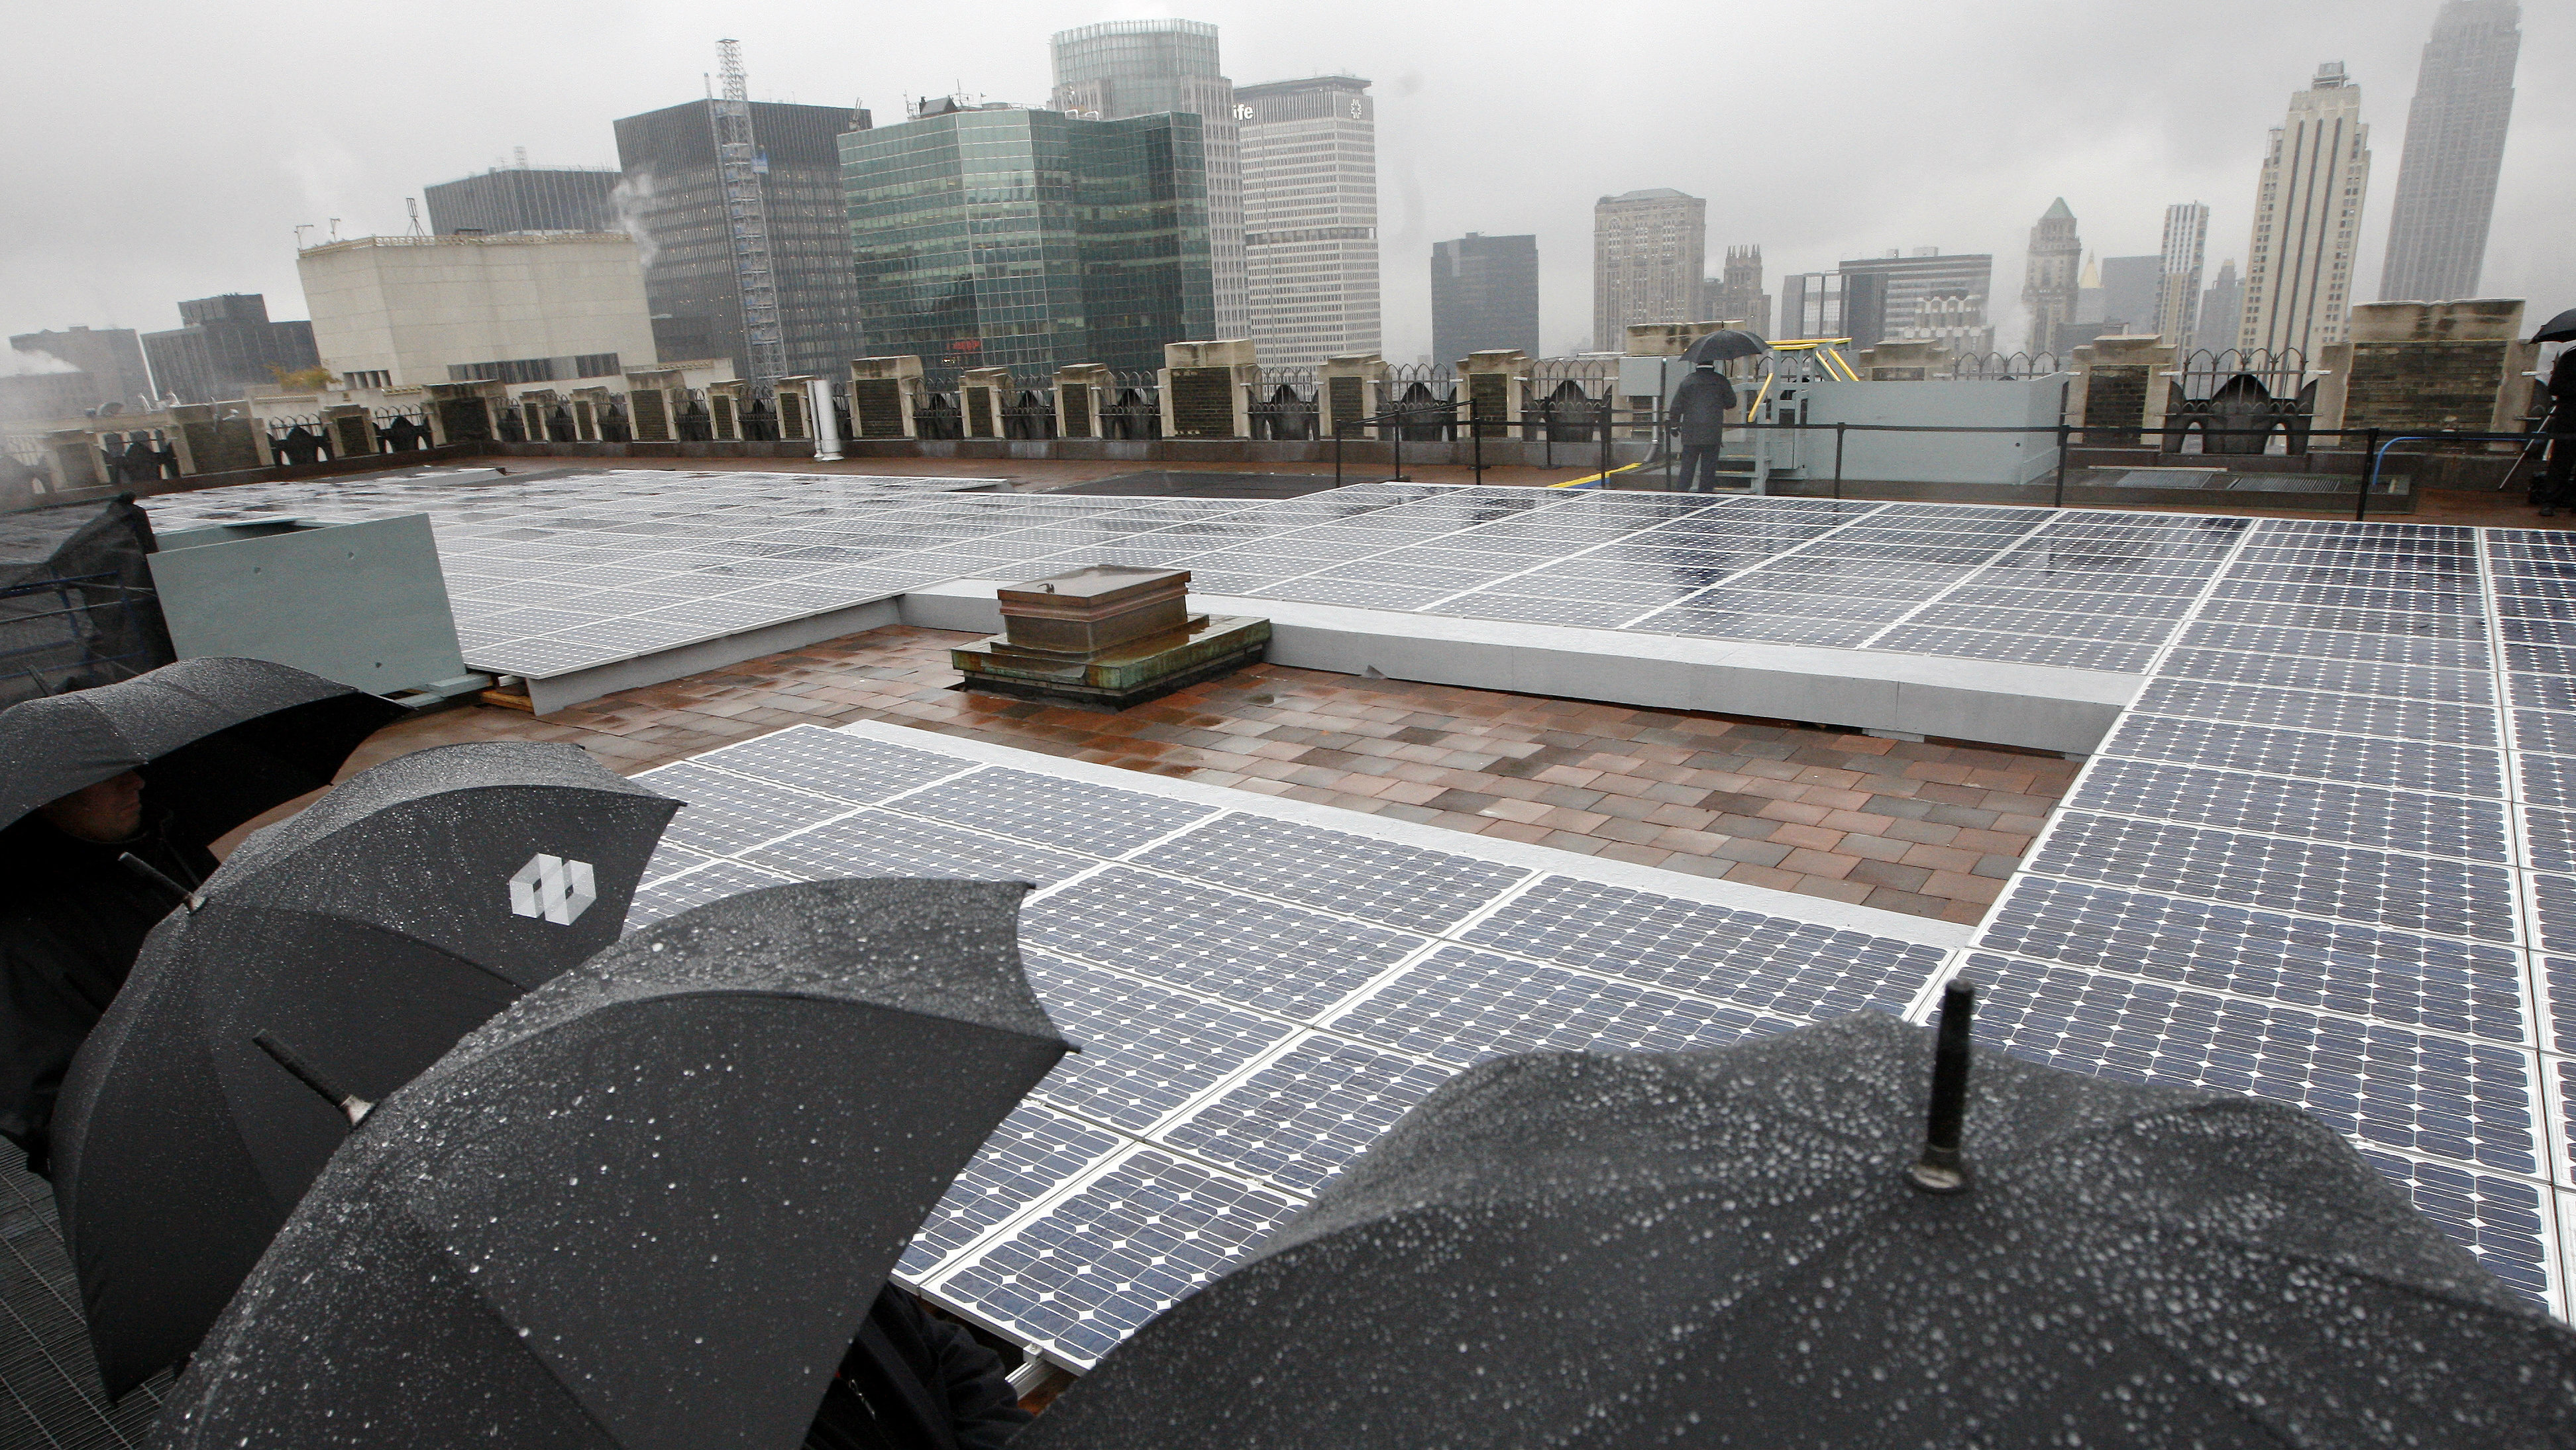 Rain pours as the largest privately owned solar roof in Manhattan was unveiled, atop 45 Rockefeller Plaza, with the capacity to generate 70 kilowatts of DC electricity, in New York, November 20, 2007.